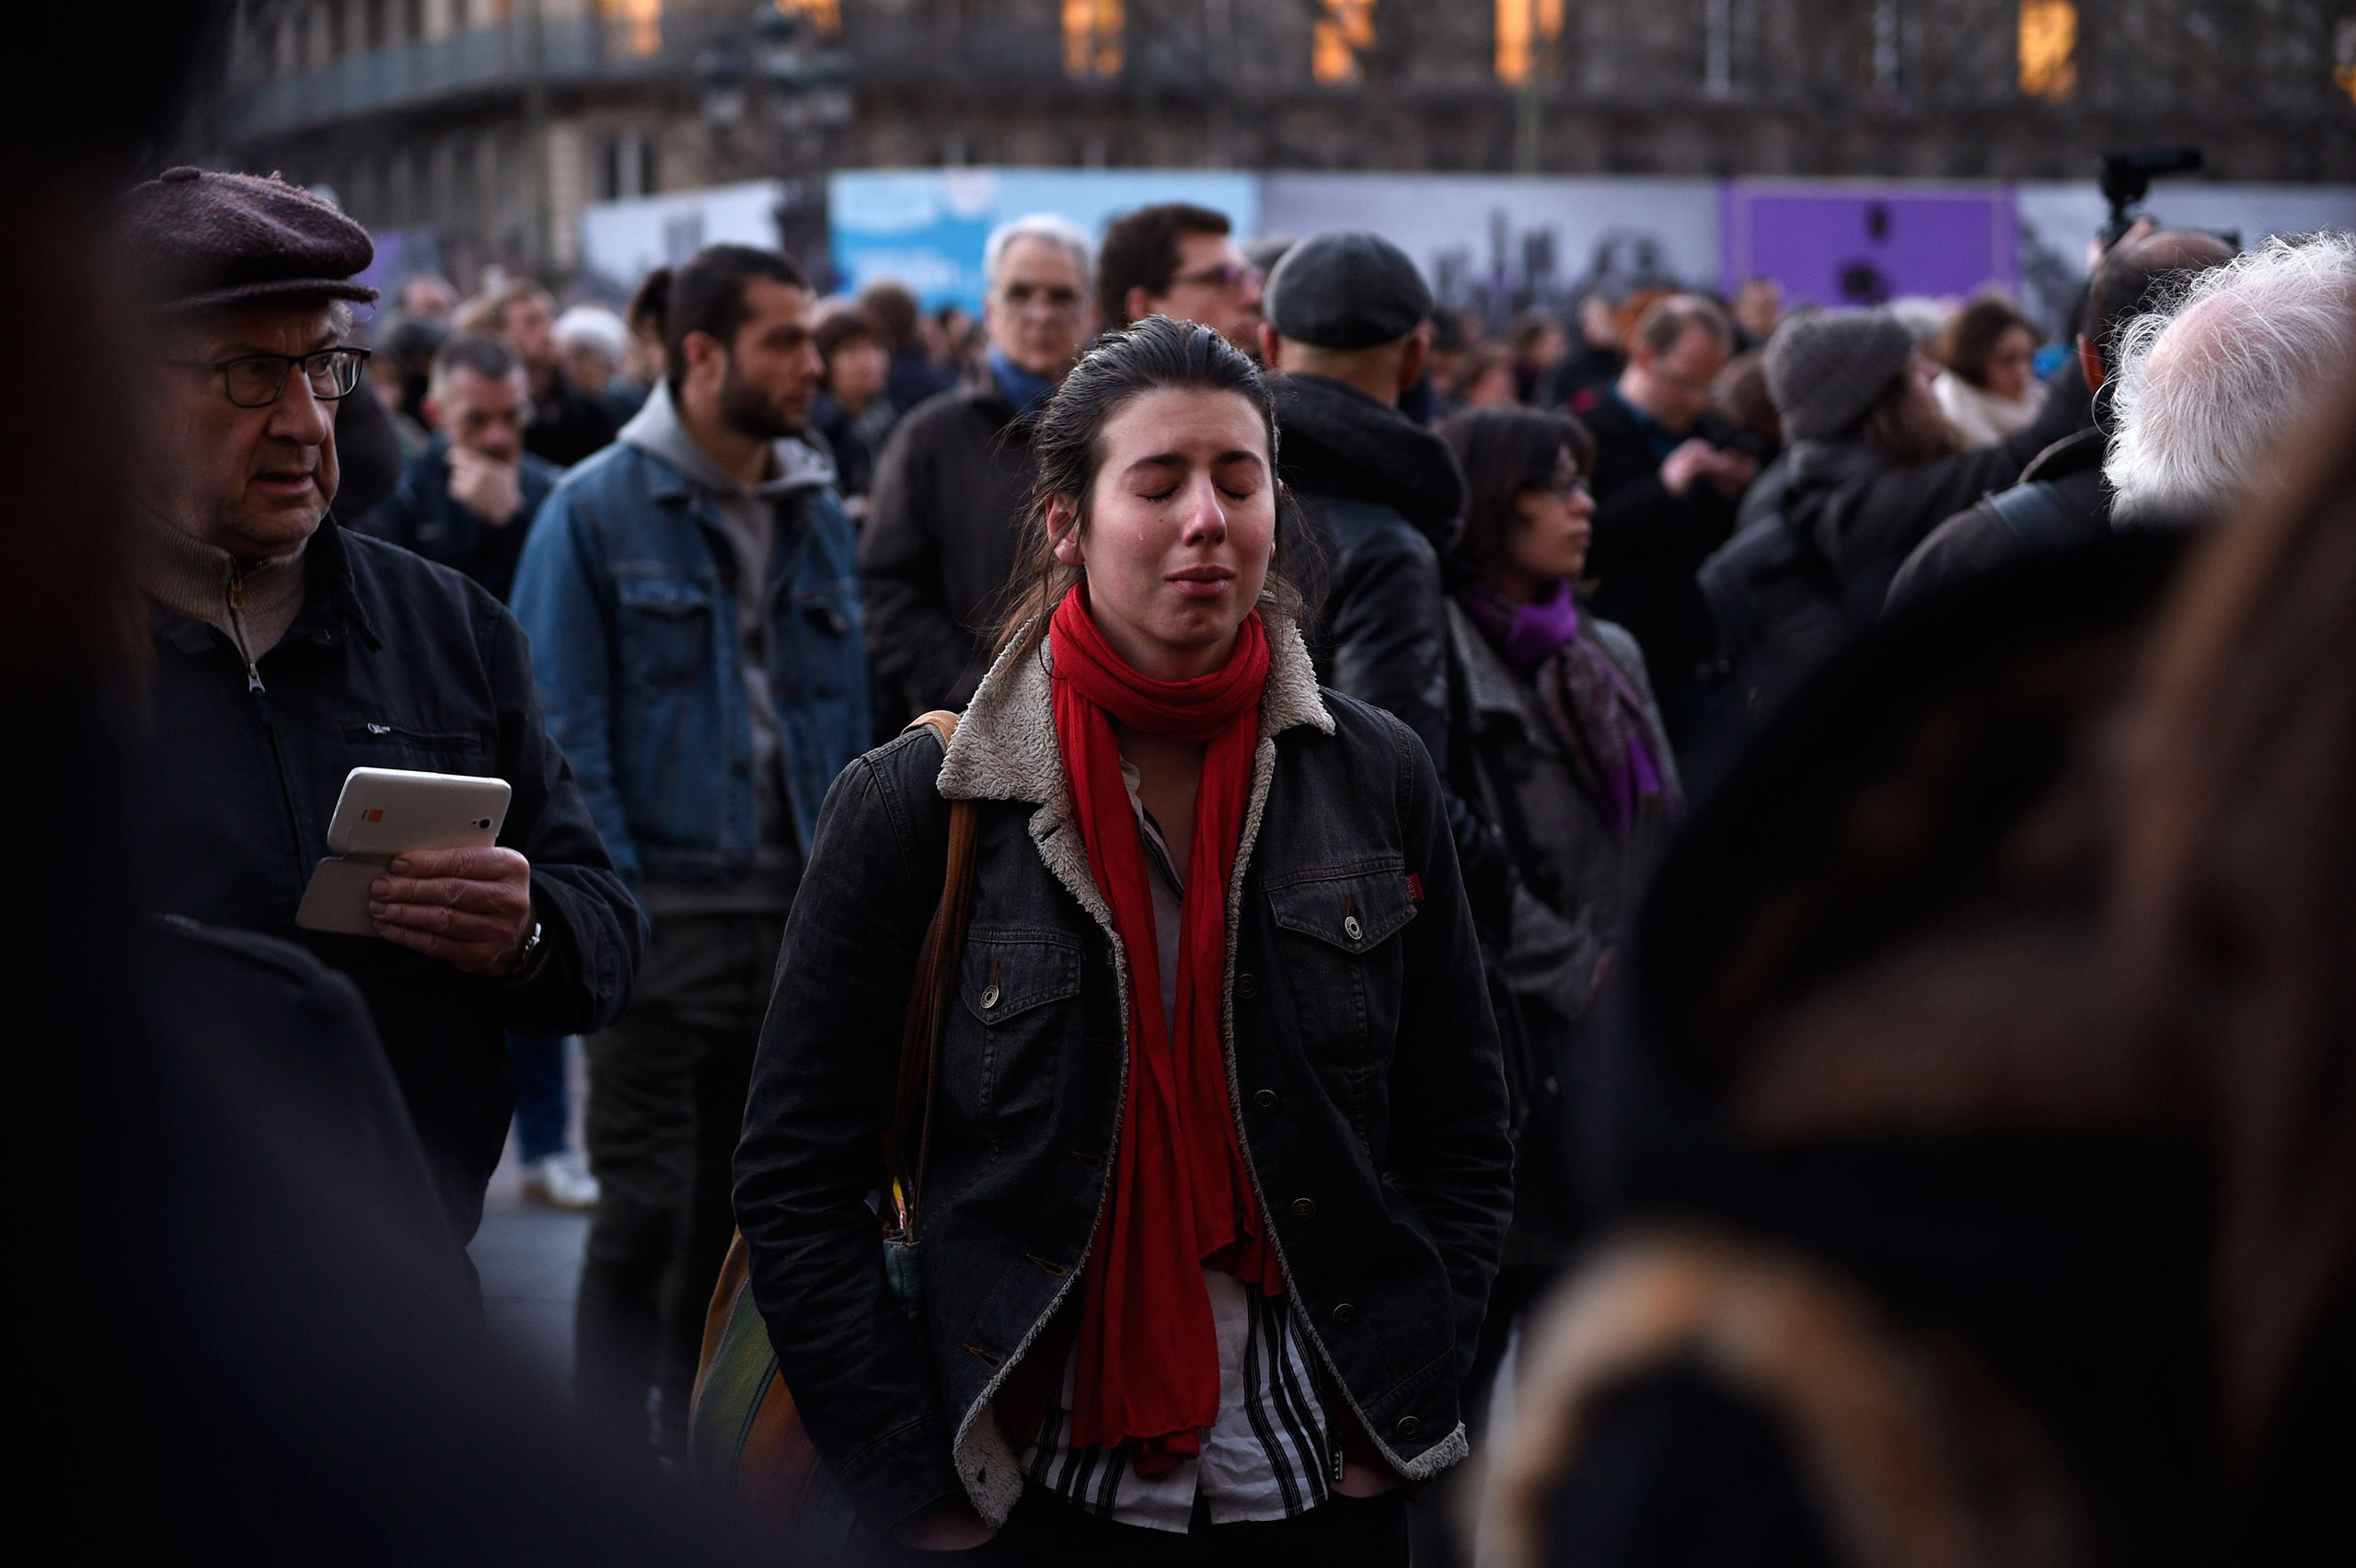 A woman mourning the victims of the Brussels terrorist attacks cries in front of the the city hall of Paris where people gather as a tribute, March 22, 2016.